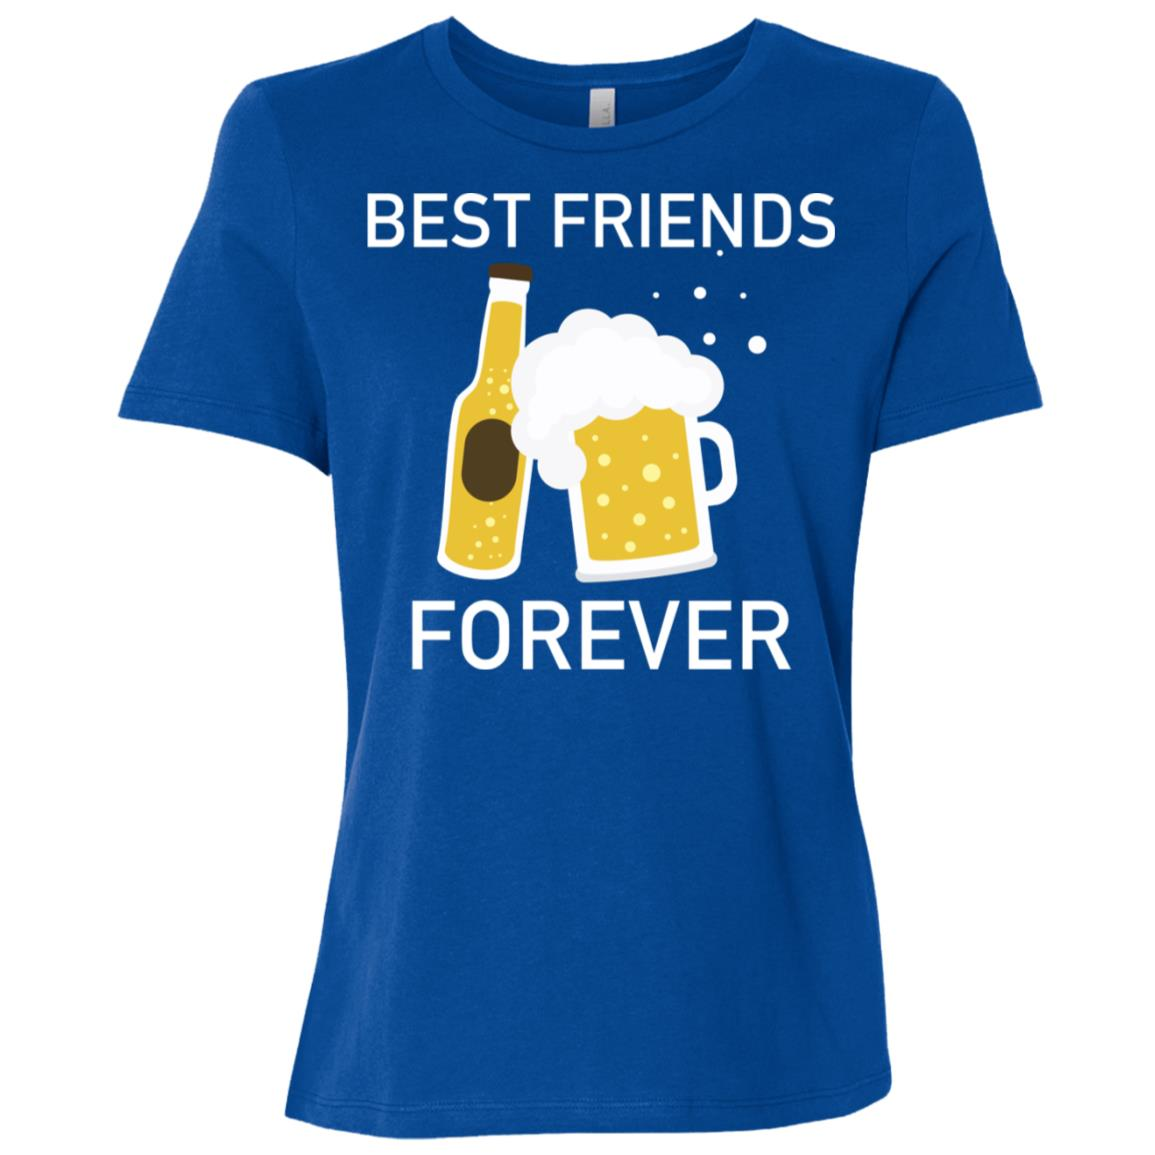 Best Friends Forever Funny Cool Alcohol Drink Women Short Sleeve T-Shirt